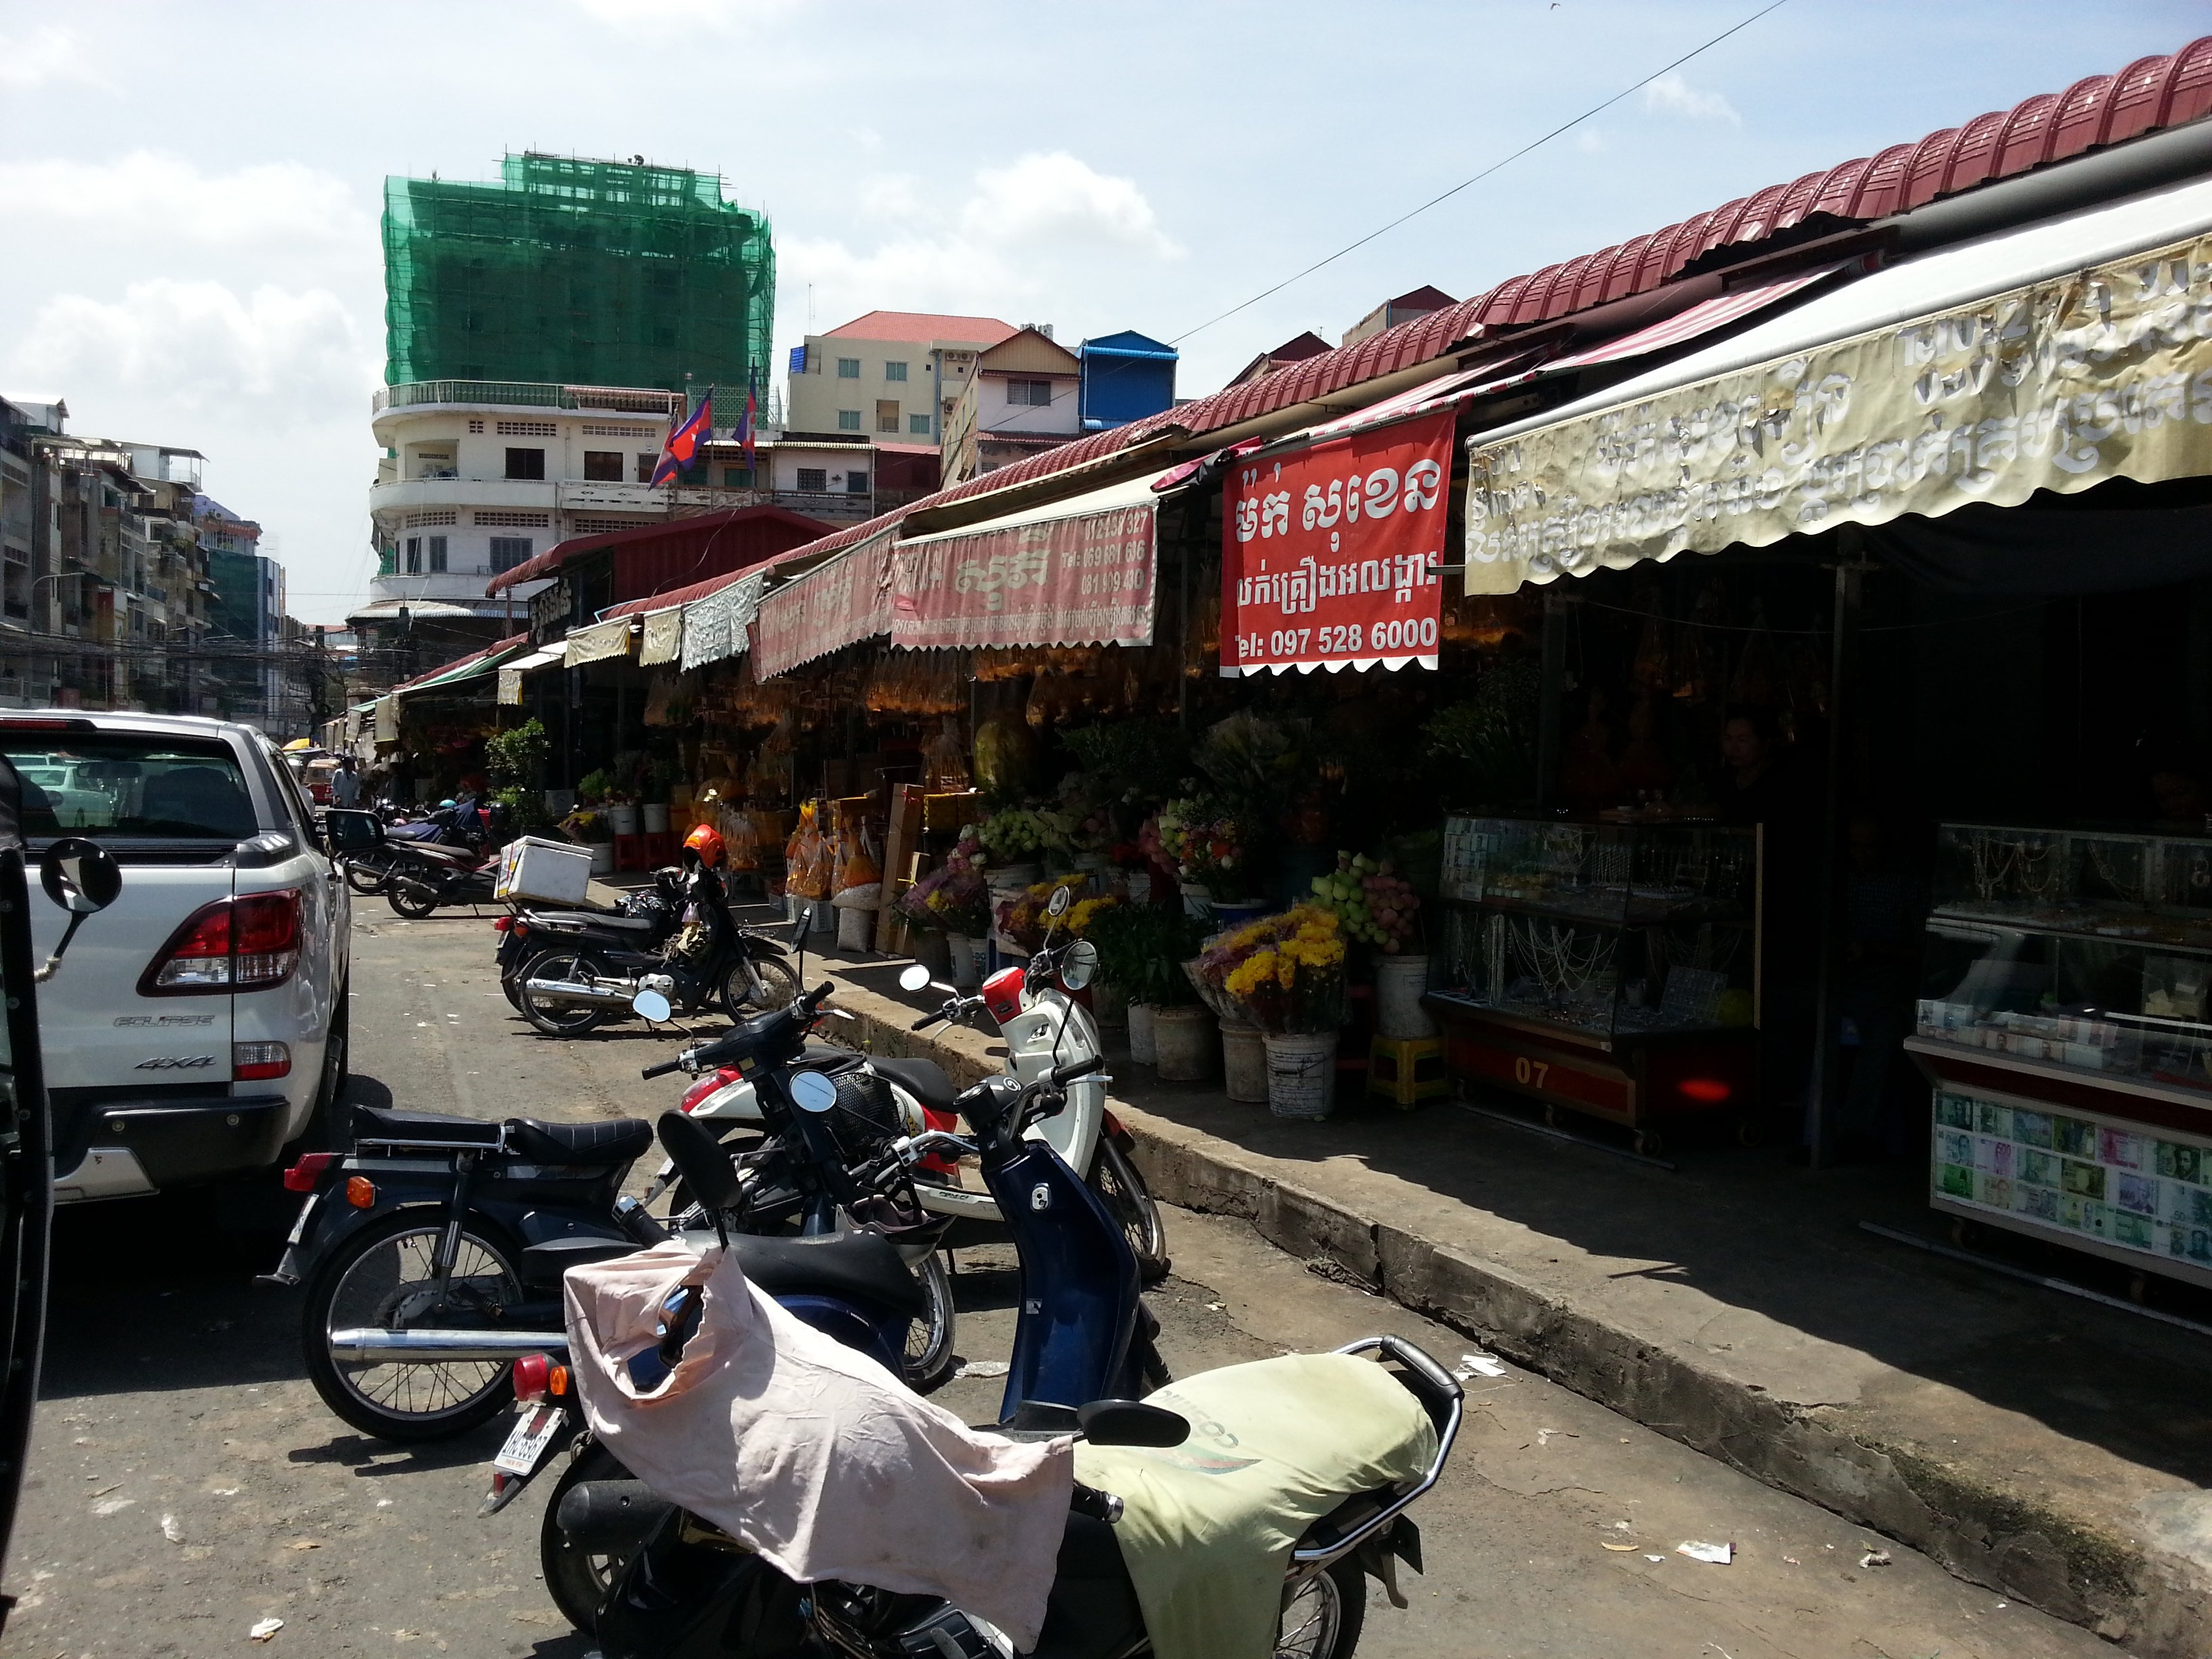 Edge of Phnom Penh Old Market